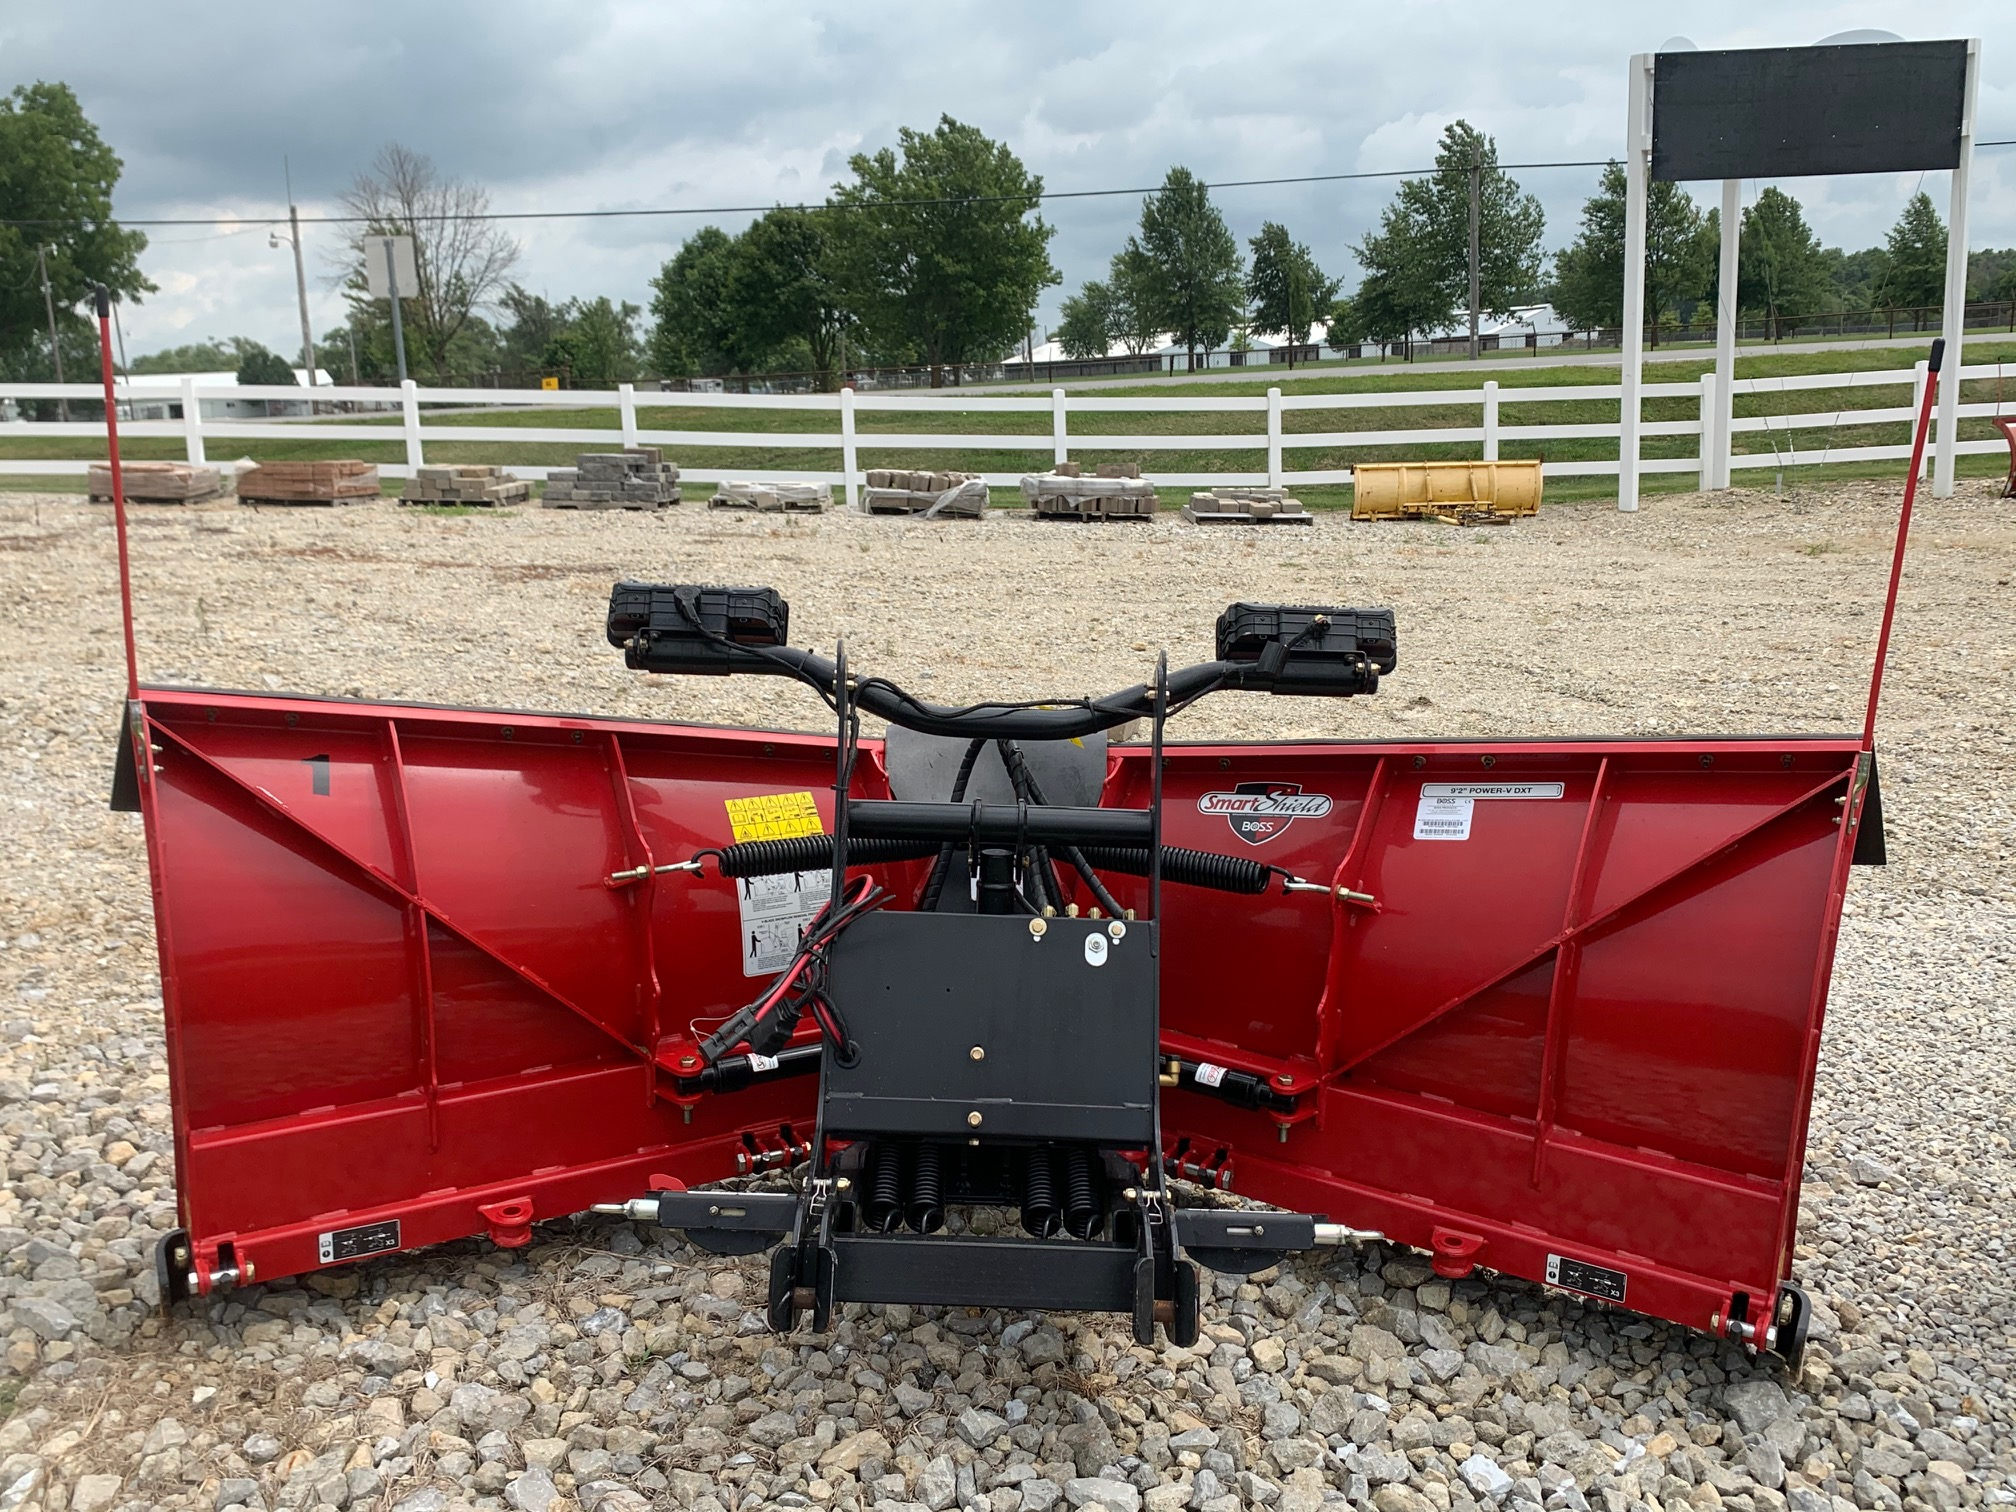 2020 Demo Steel DXt Plow #1 (2)